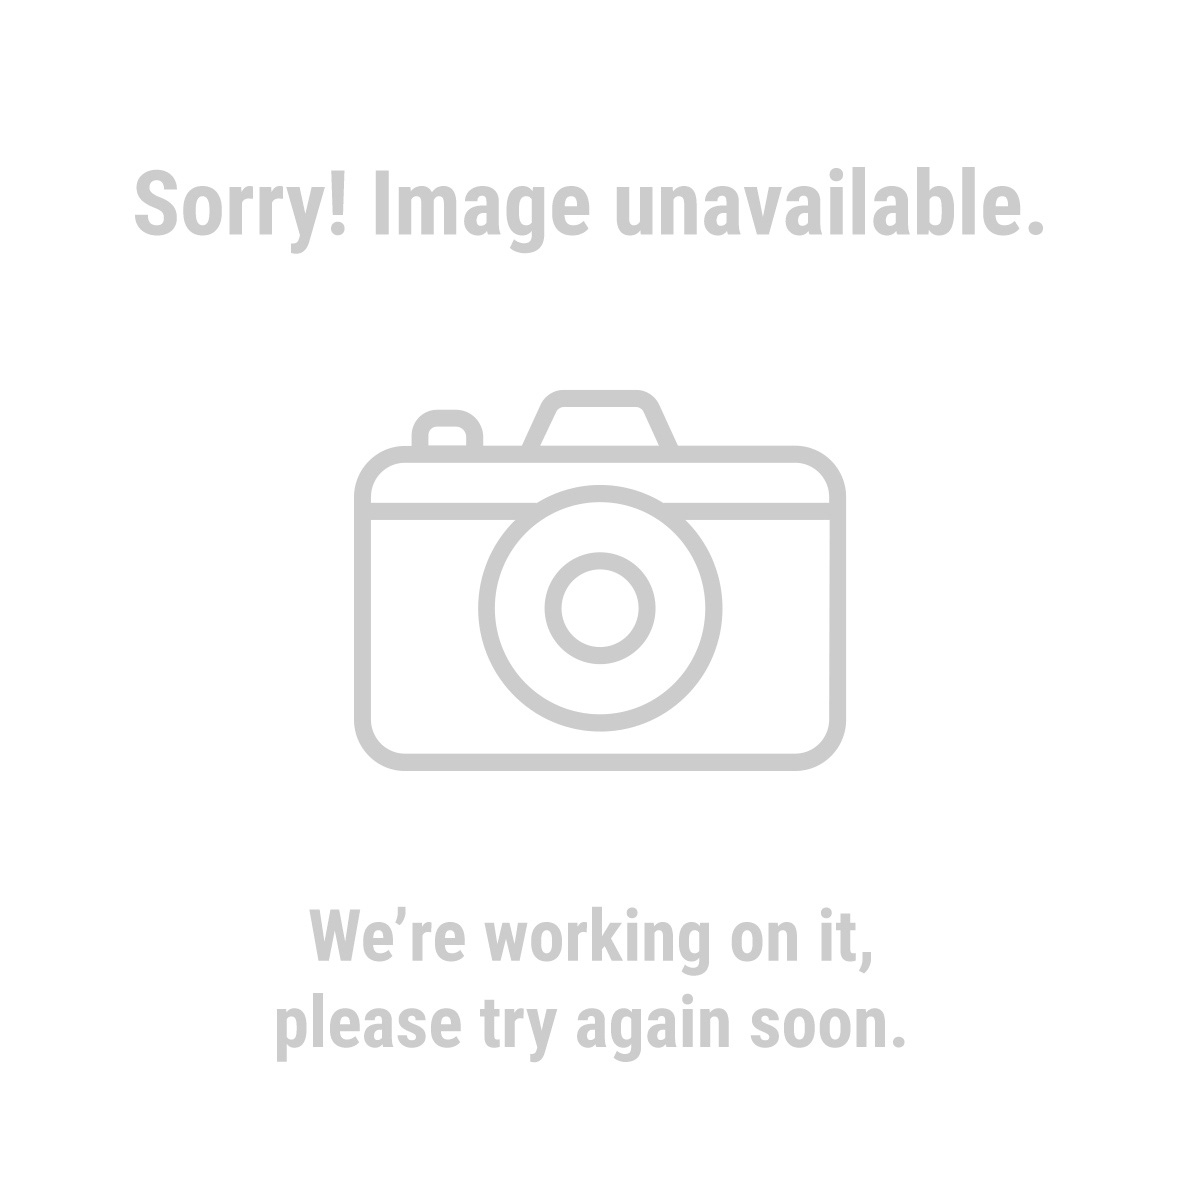 Warrior® 69628 Grit Flap Disc